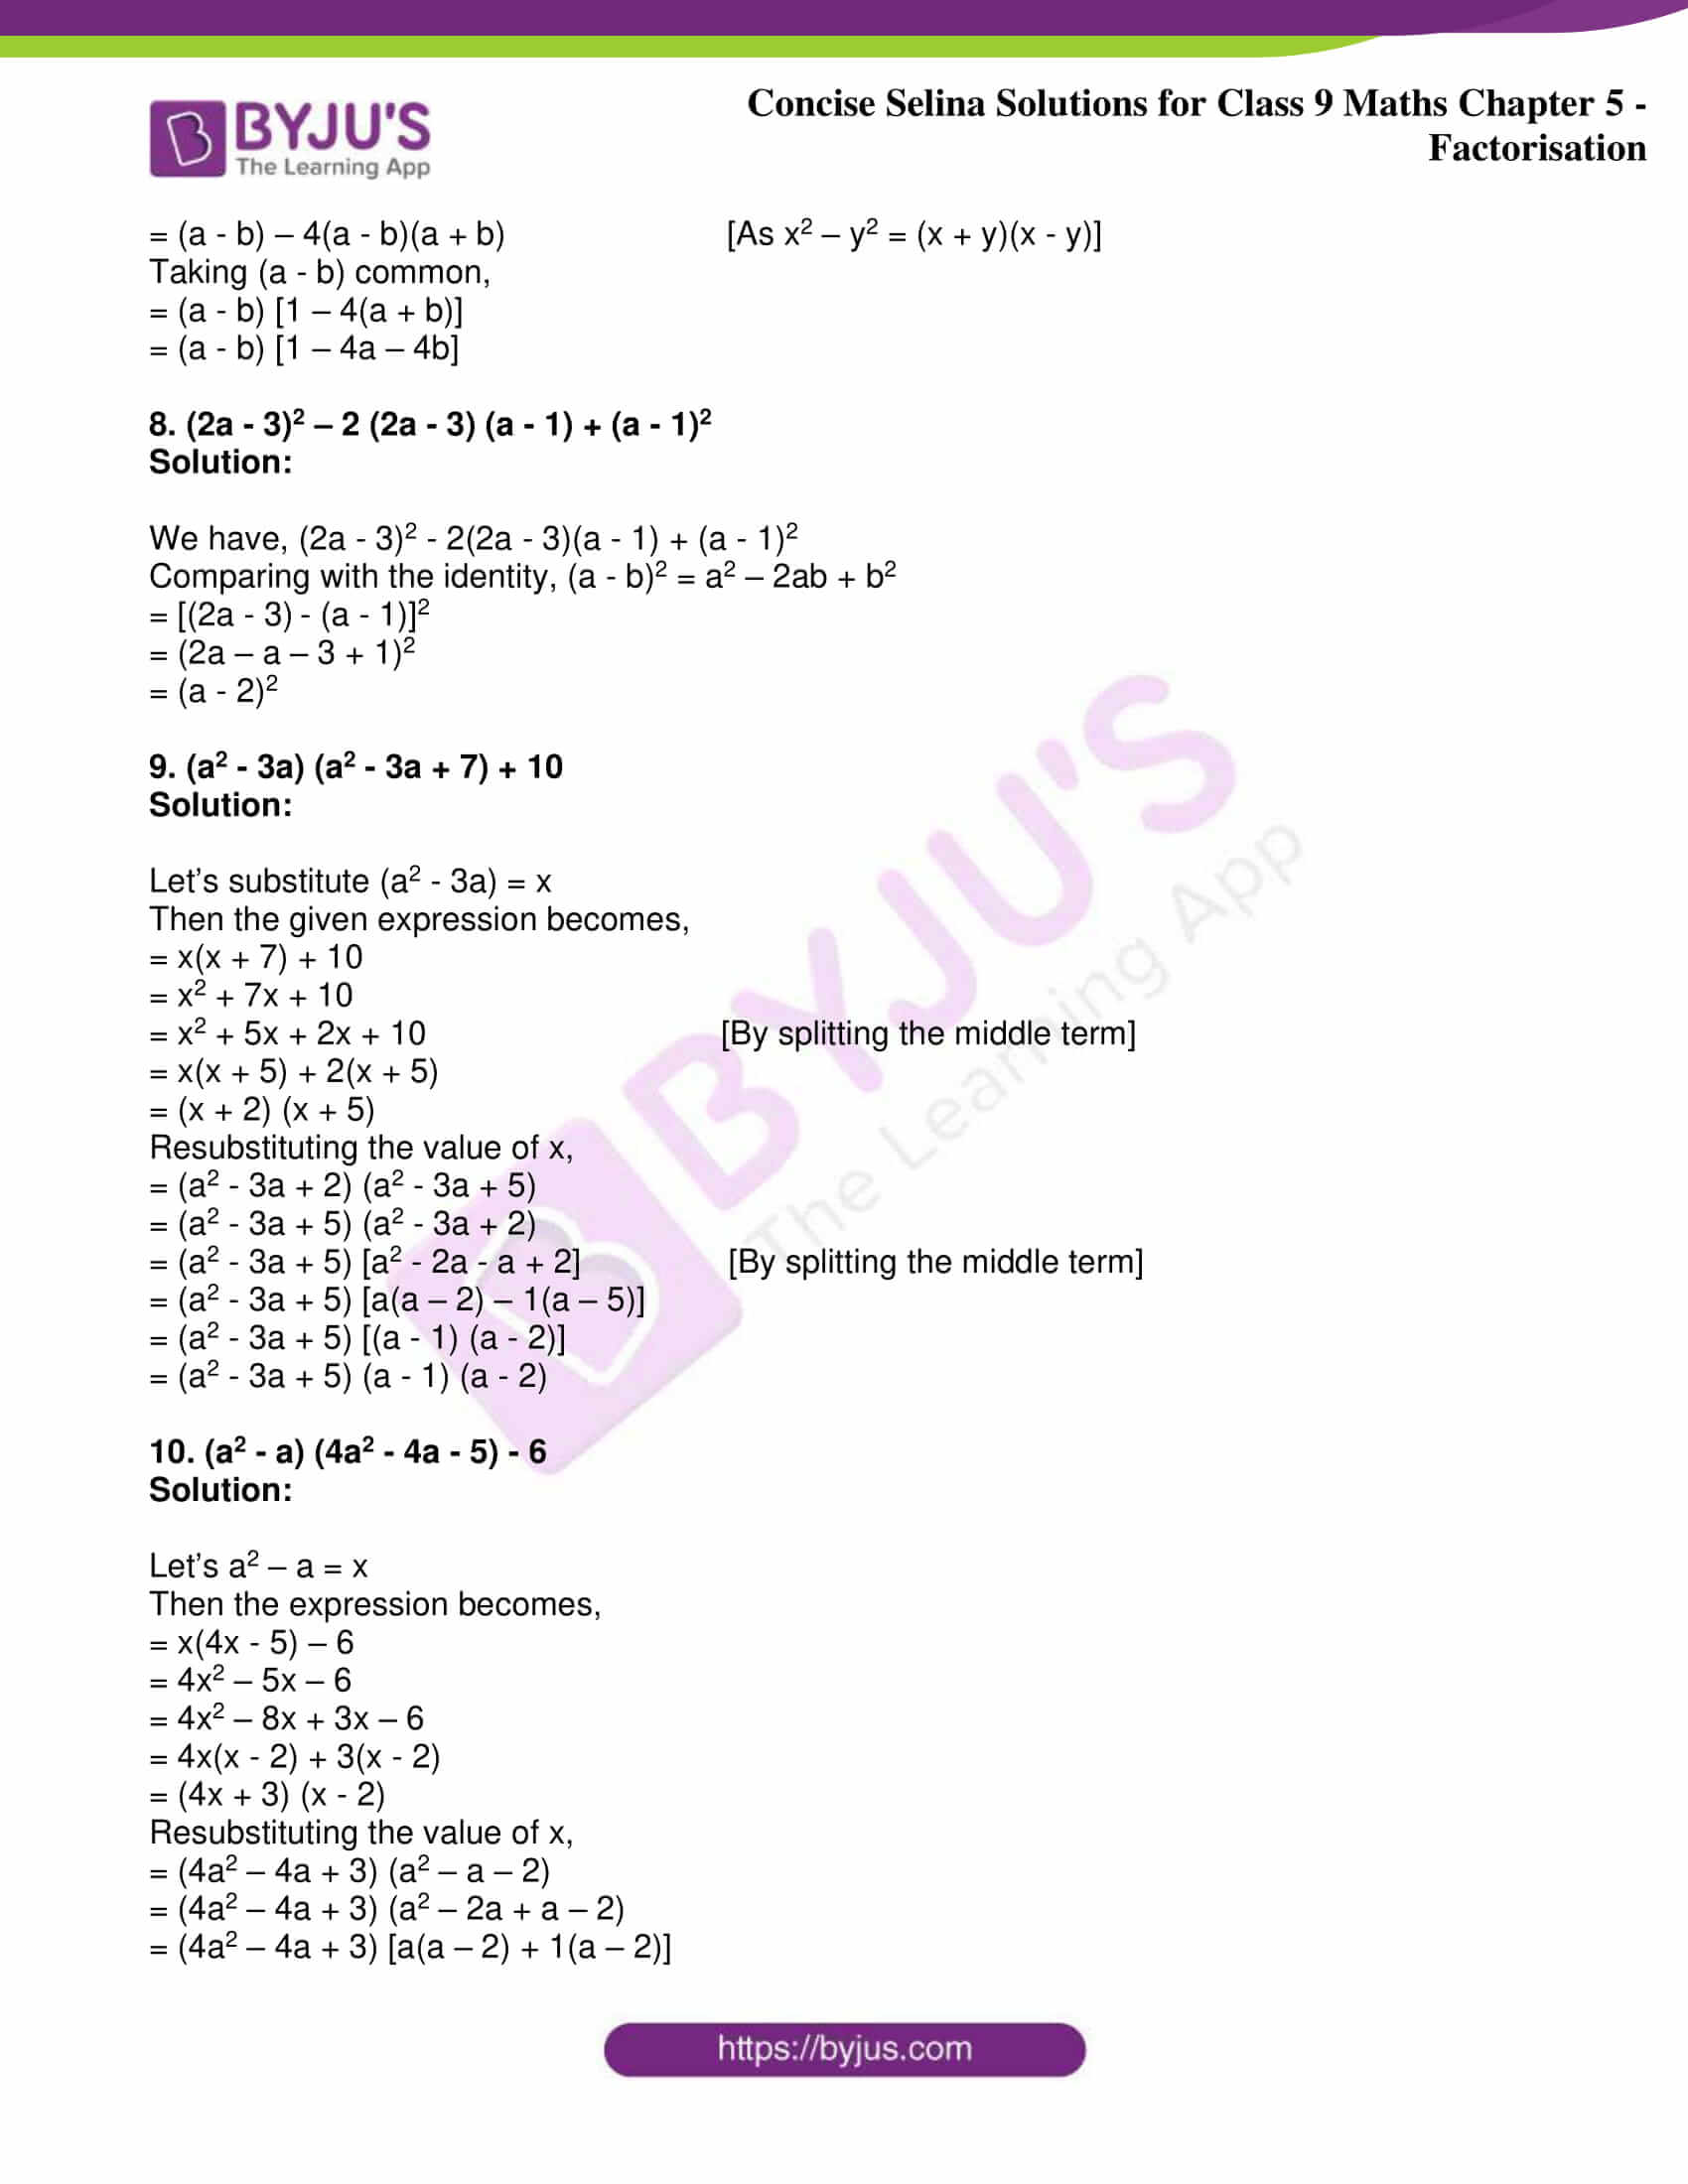 icse class 9 maths may10 selina solutions chapter 5 factorisation 27